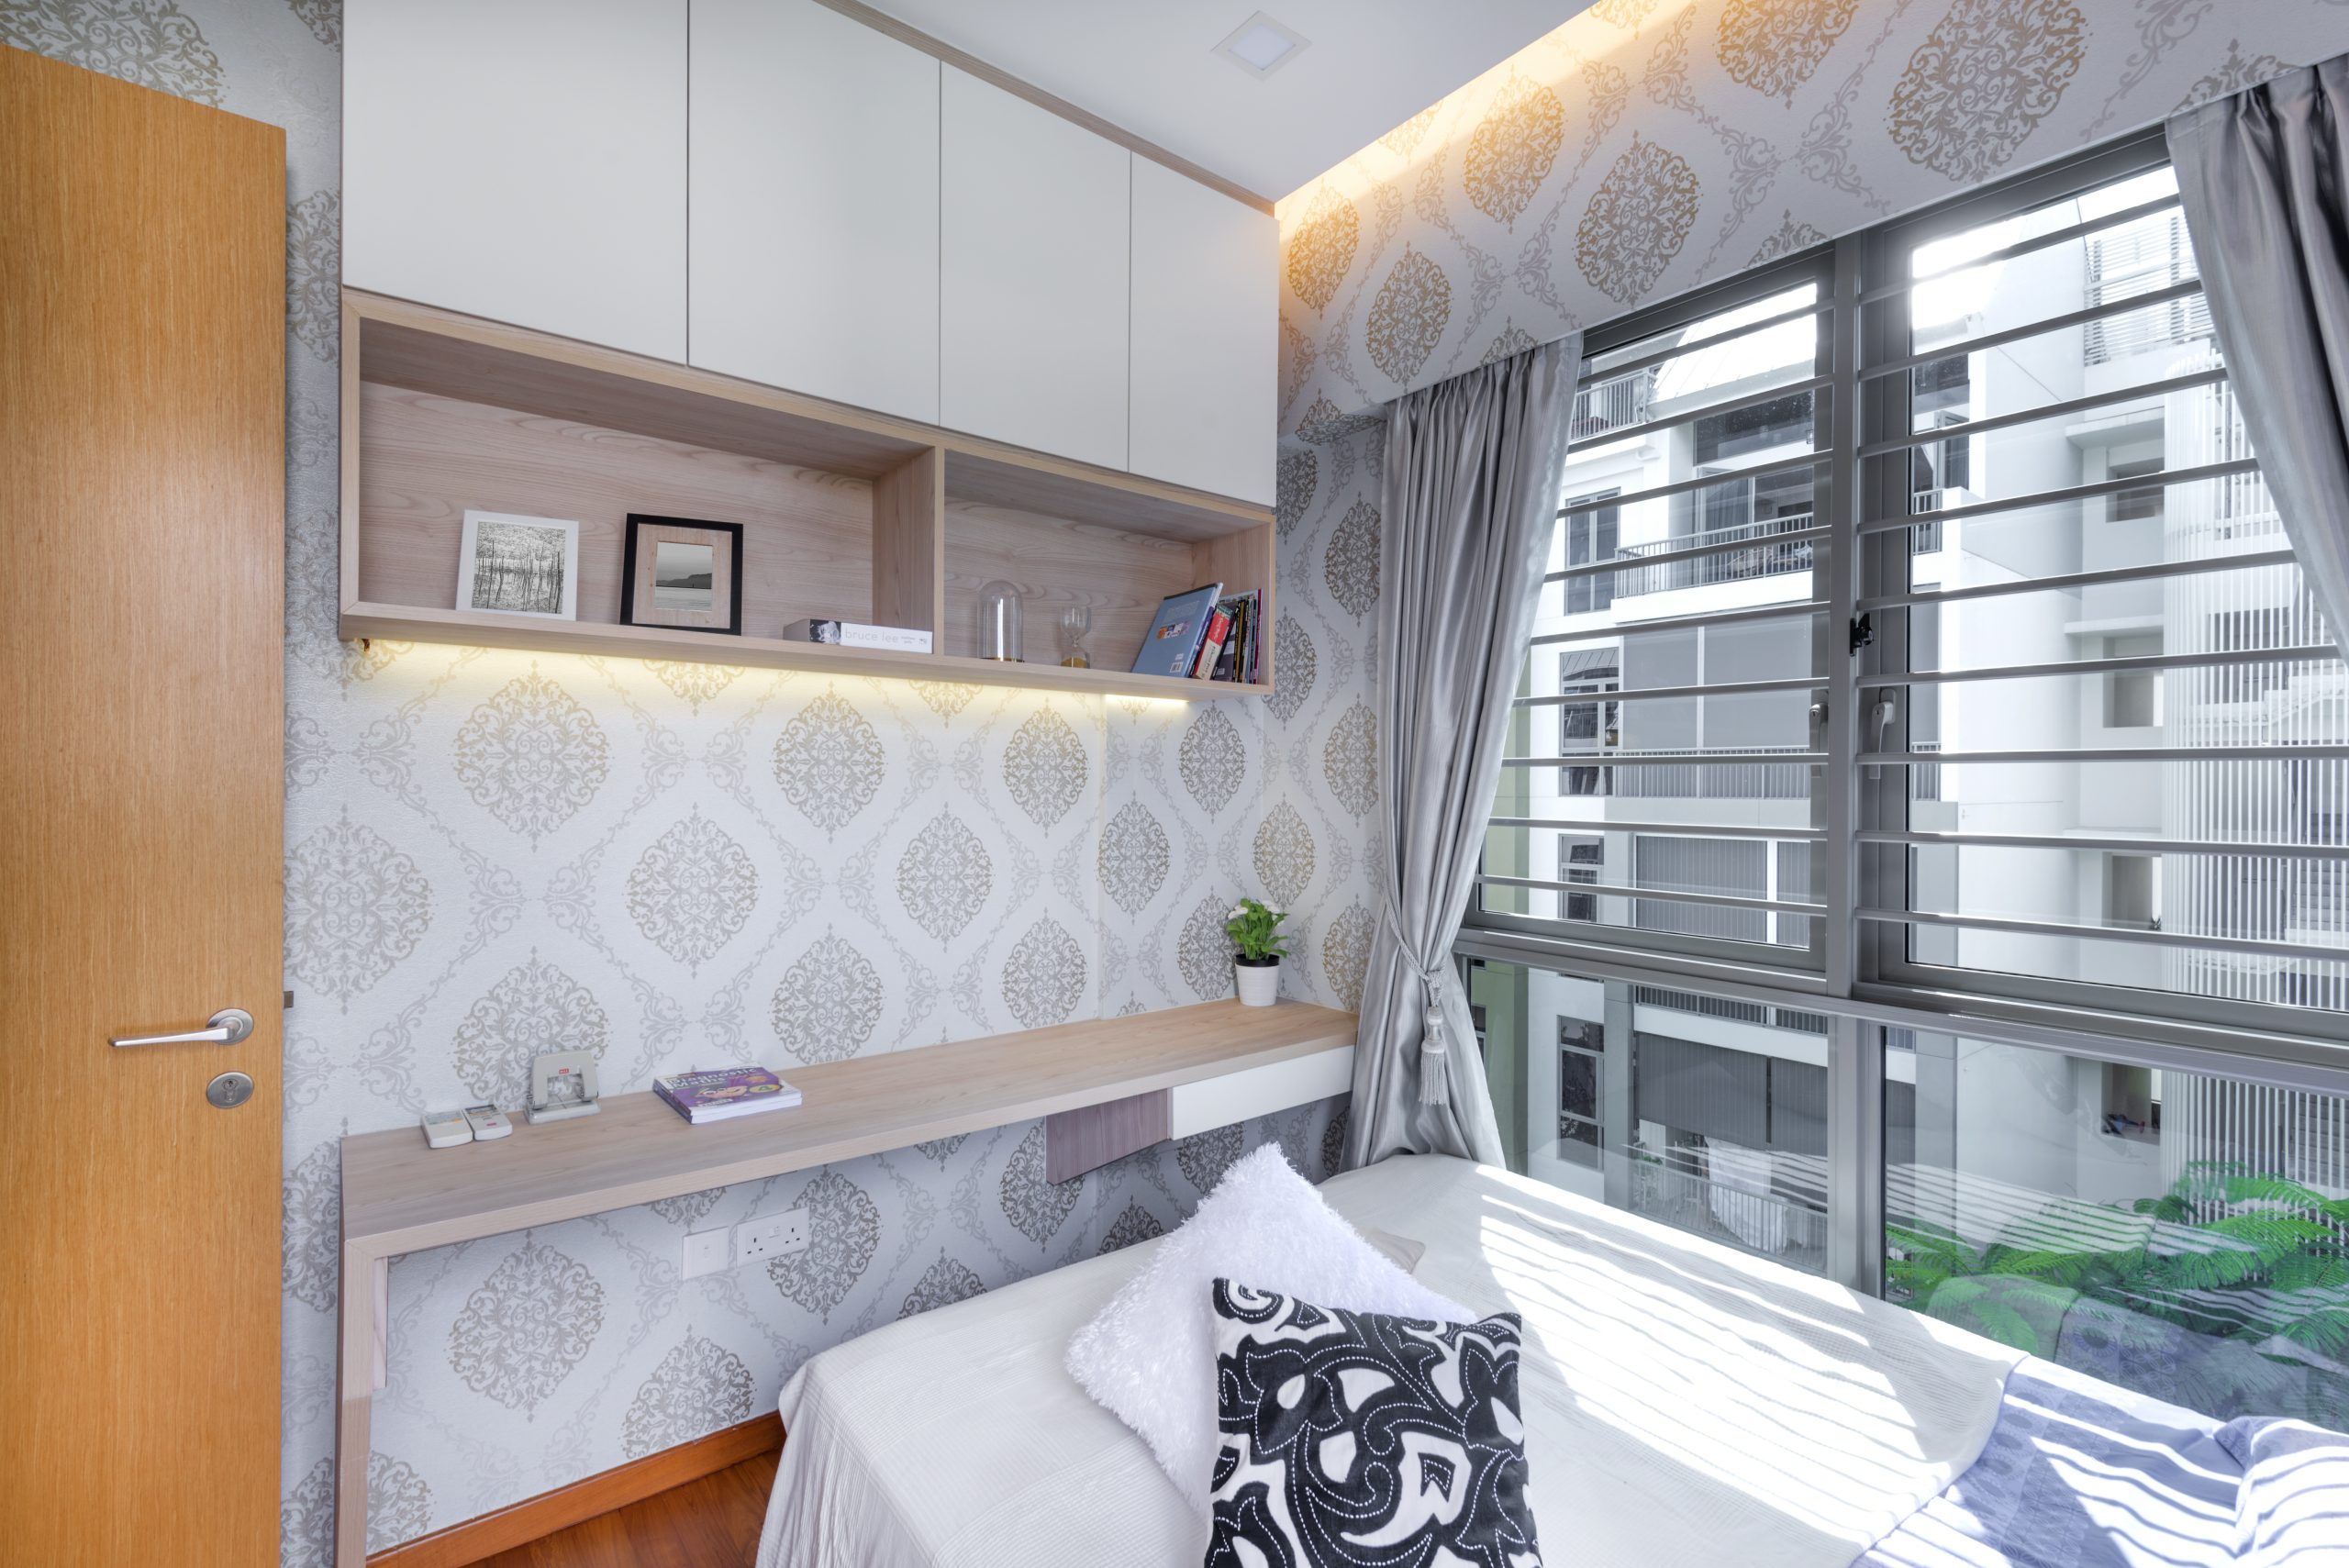 Big or small, here are 8 renovation saving tips for your HDB flat!